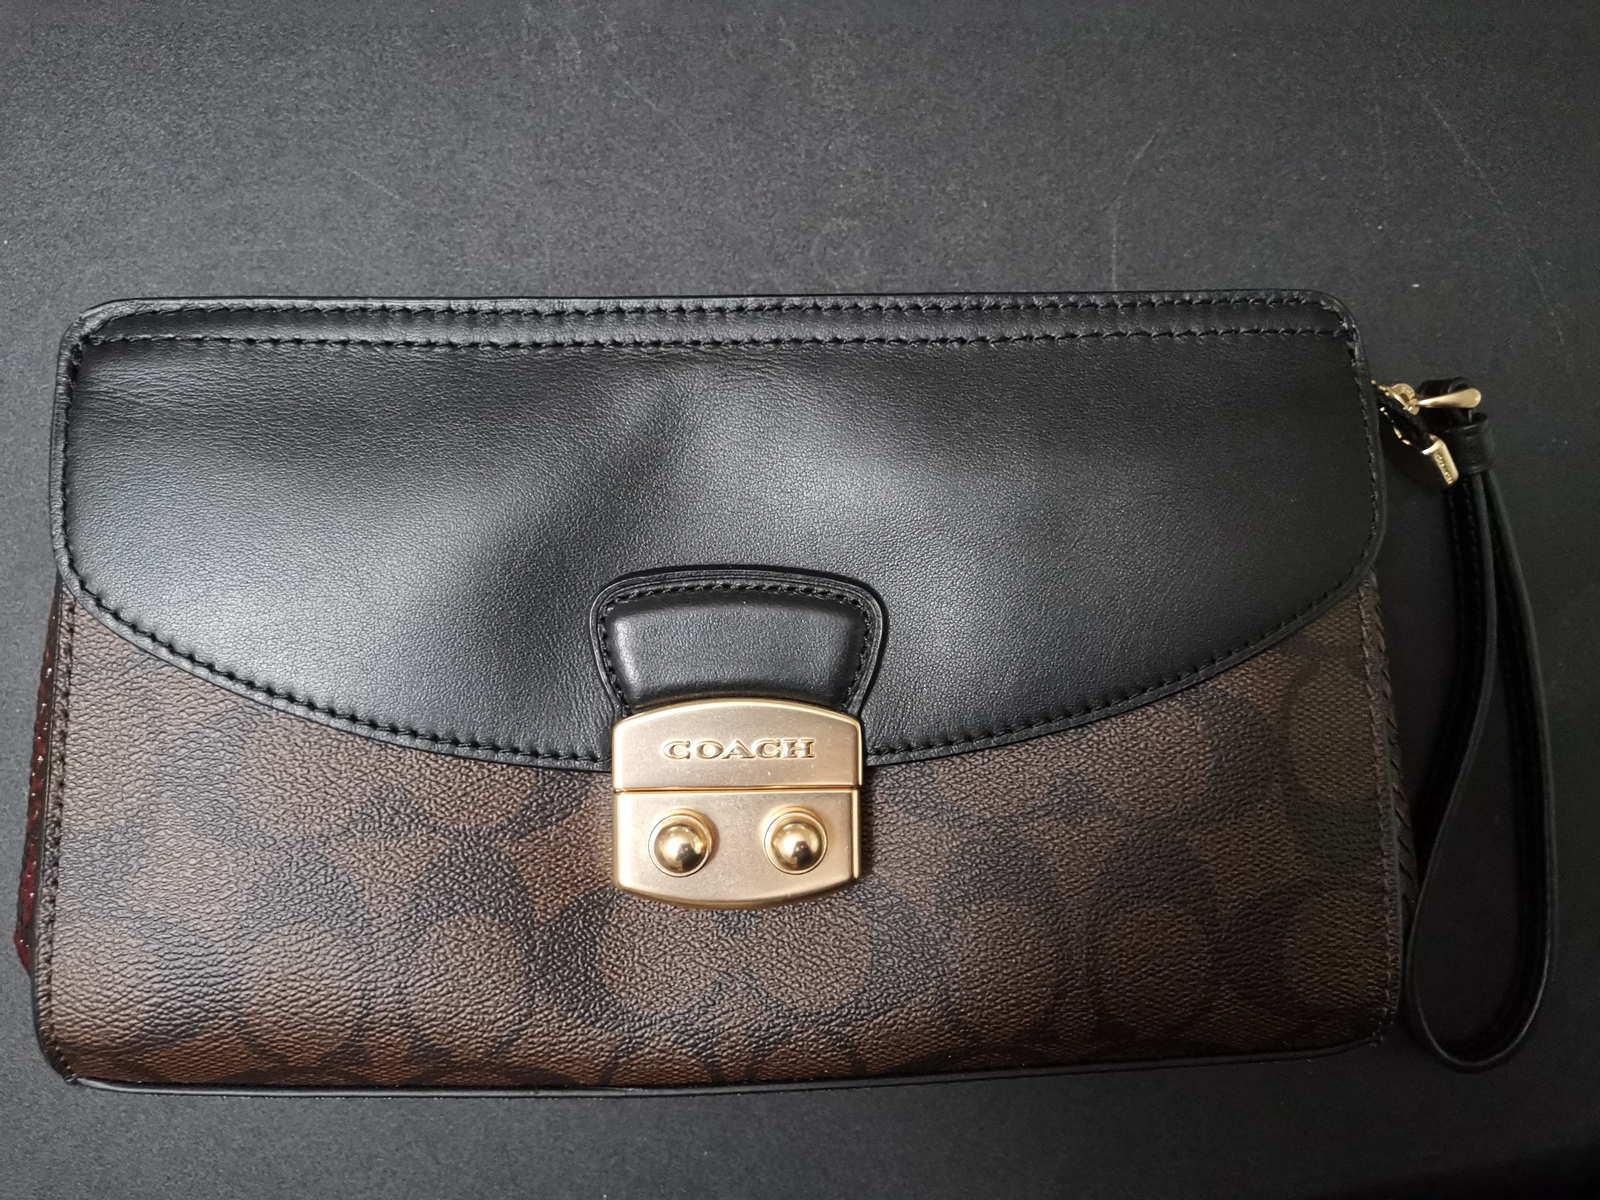 NWT Coach Signature brown black  Flap Clutch with Snake Embossed Leather handbag